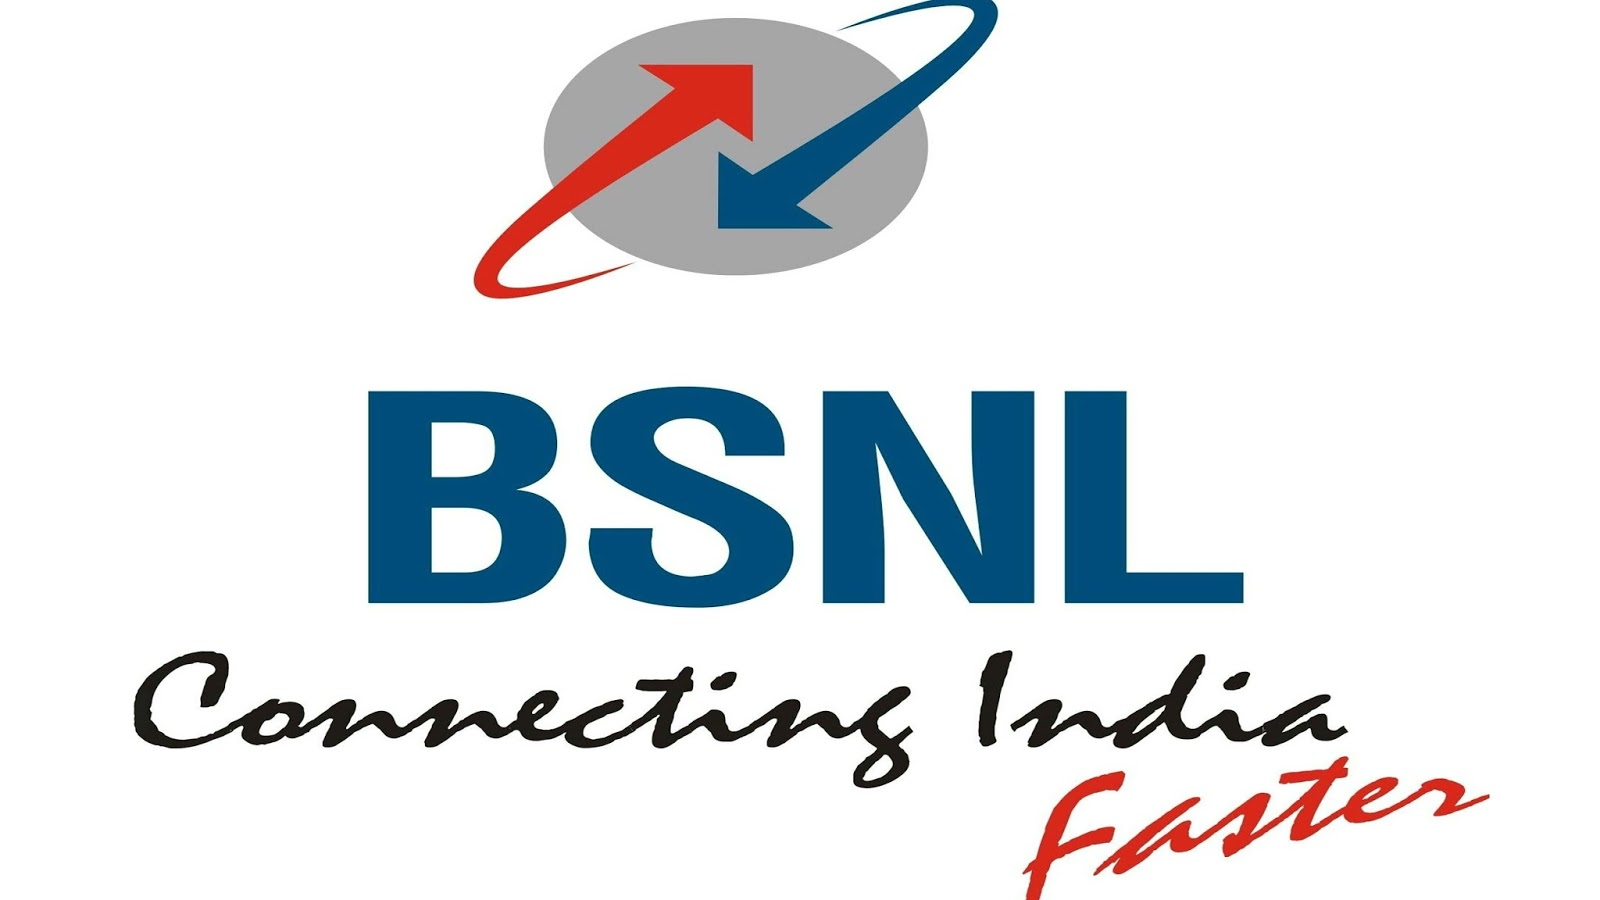 BSNL planning to launch 4G service in Kerala by March 2017